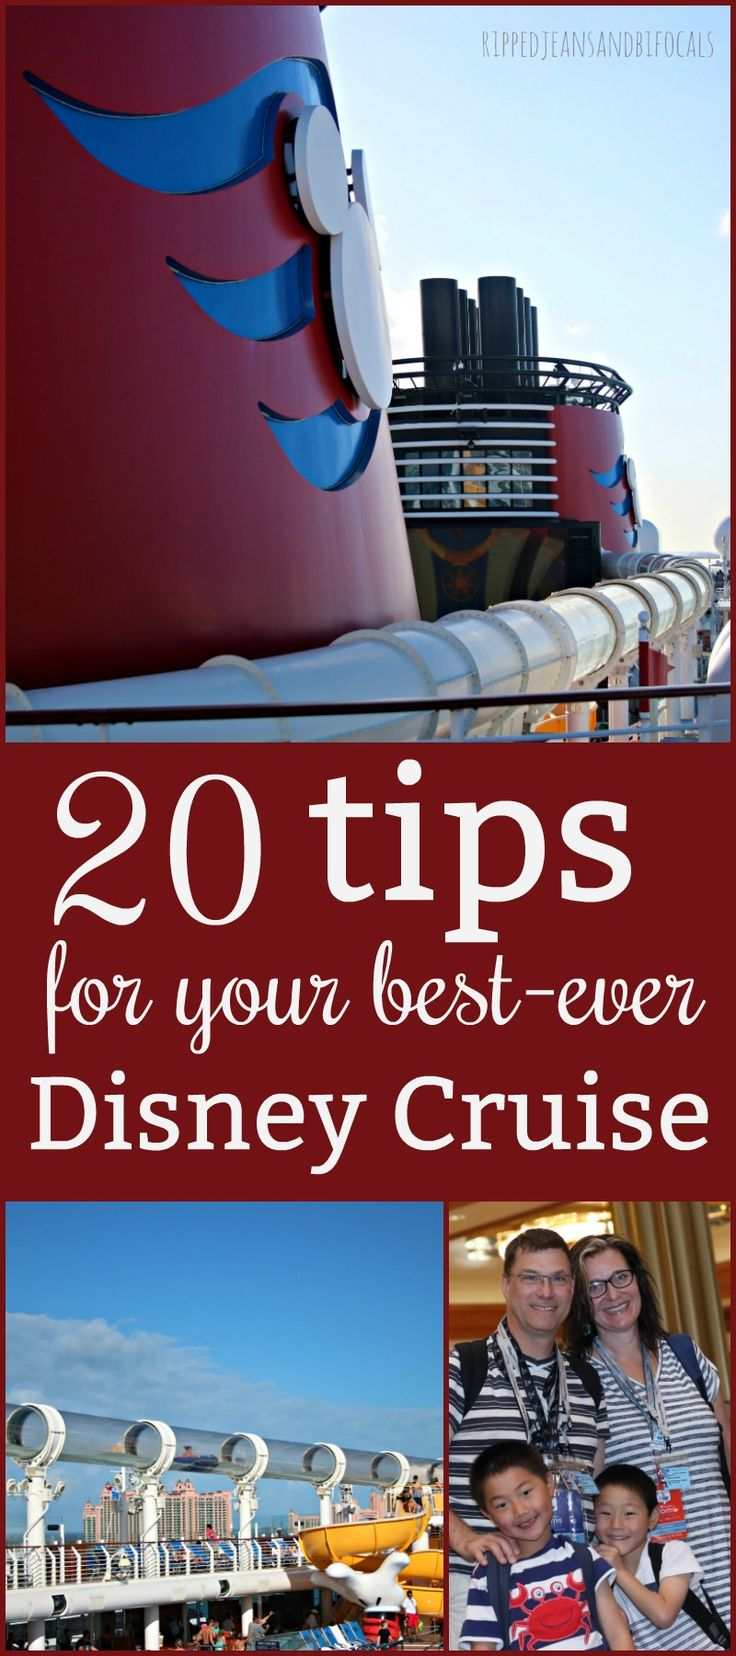 20 Best Disney Cruise Tips|RIpped Jeans and Bifocals  If you're going on a Disney Cruise, I'm excited for you (and a little jealous because I'm already ready for another one.) Here are my 20 best Disney Cruise tips that will help you as you plan your own ultimate family vacation.  #DisneyCruise #DisneyDream #TravelWithKids #Disney #DisneySMMC  |Family travel planning|Family vacation ideas|Family travel ideas|Family trip ideas|Disney vacation ideas| Cruise|Disney Cruise Planning|